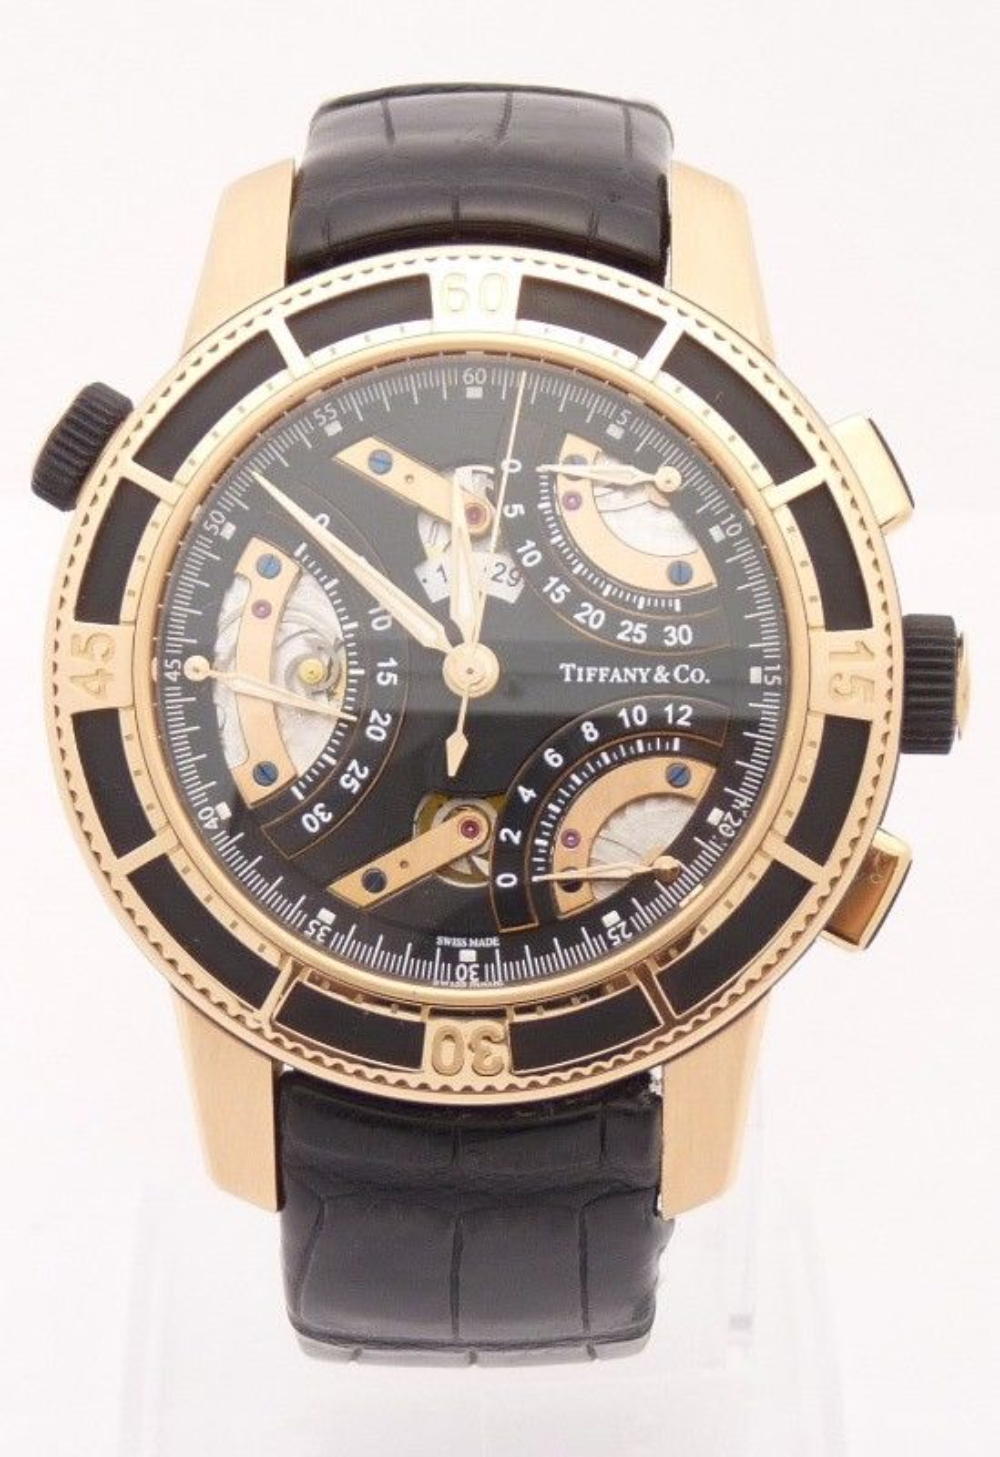 Tiffany & Co T-57 Mens Chronograph 18K Rose Gold Watch